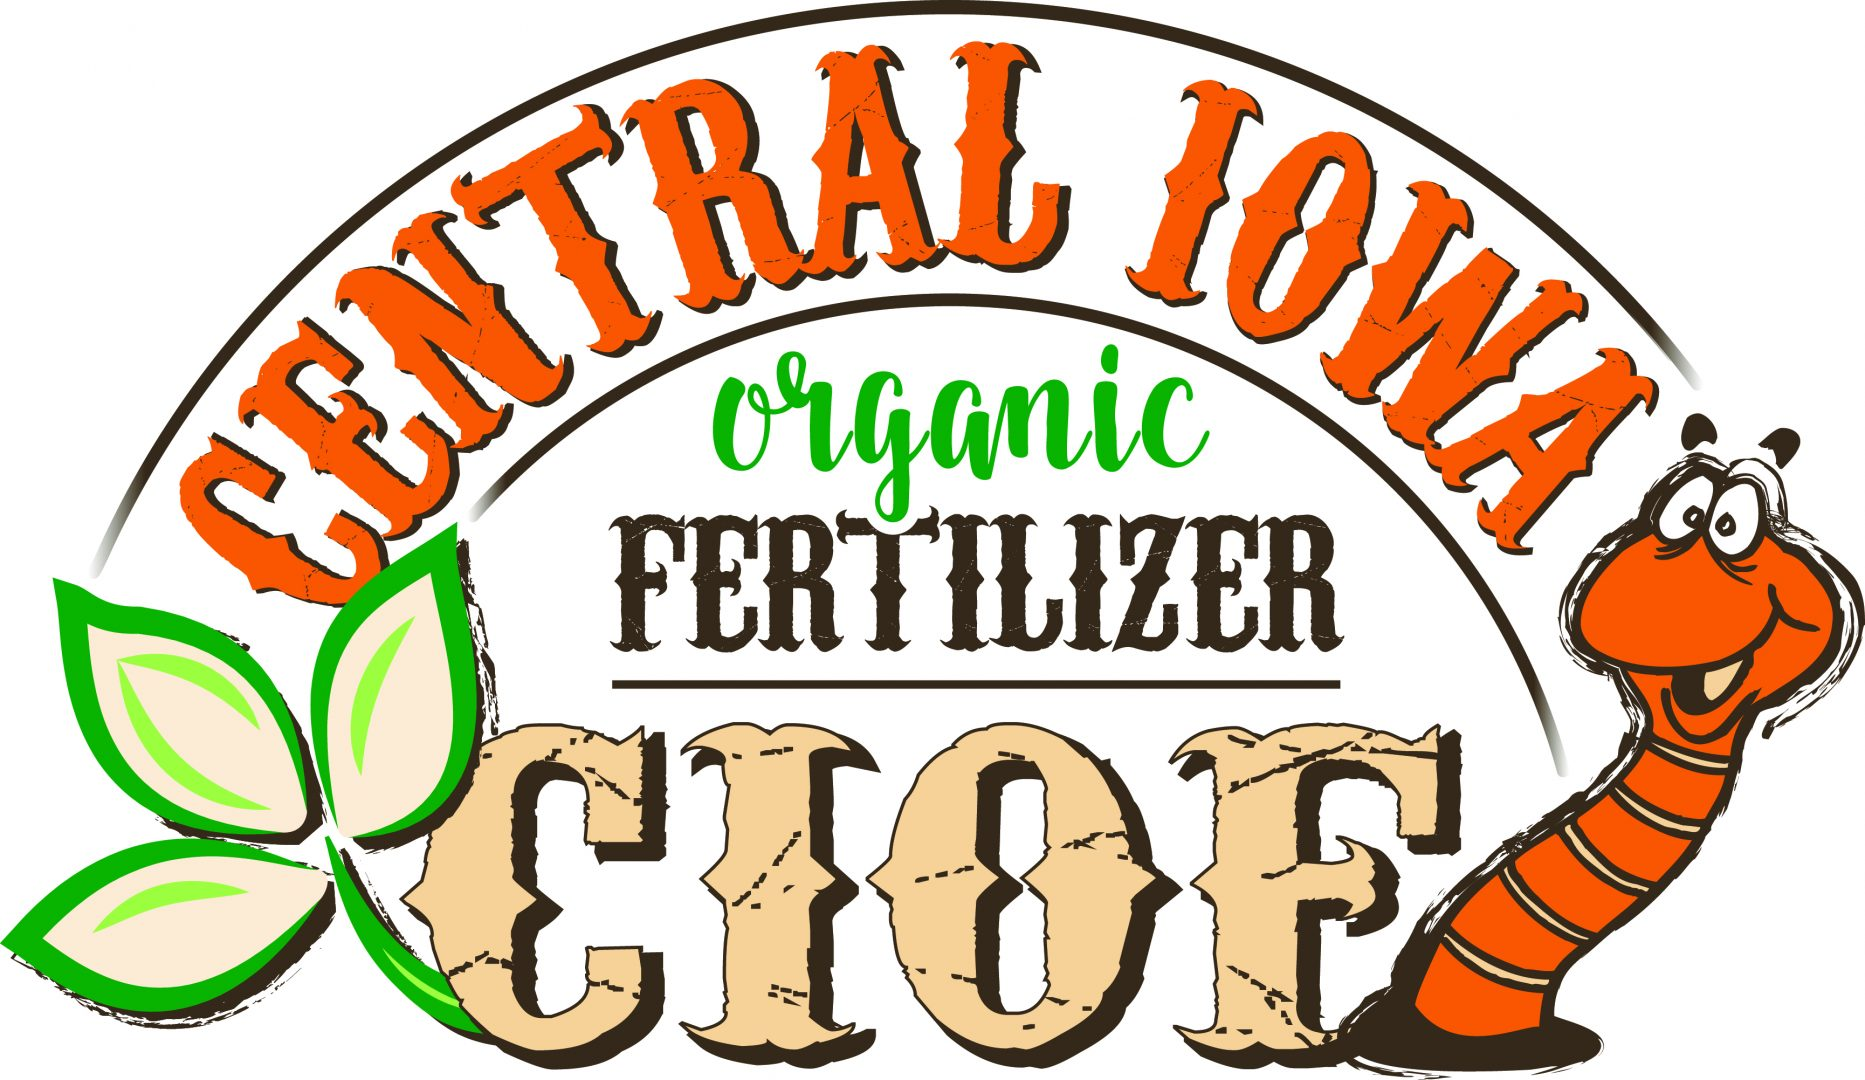 Central Iowa Organic Fertilizer